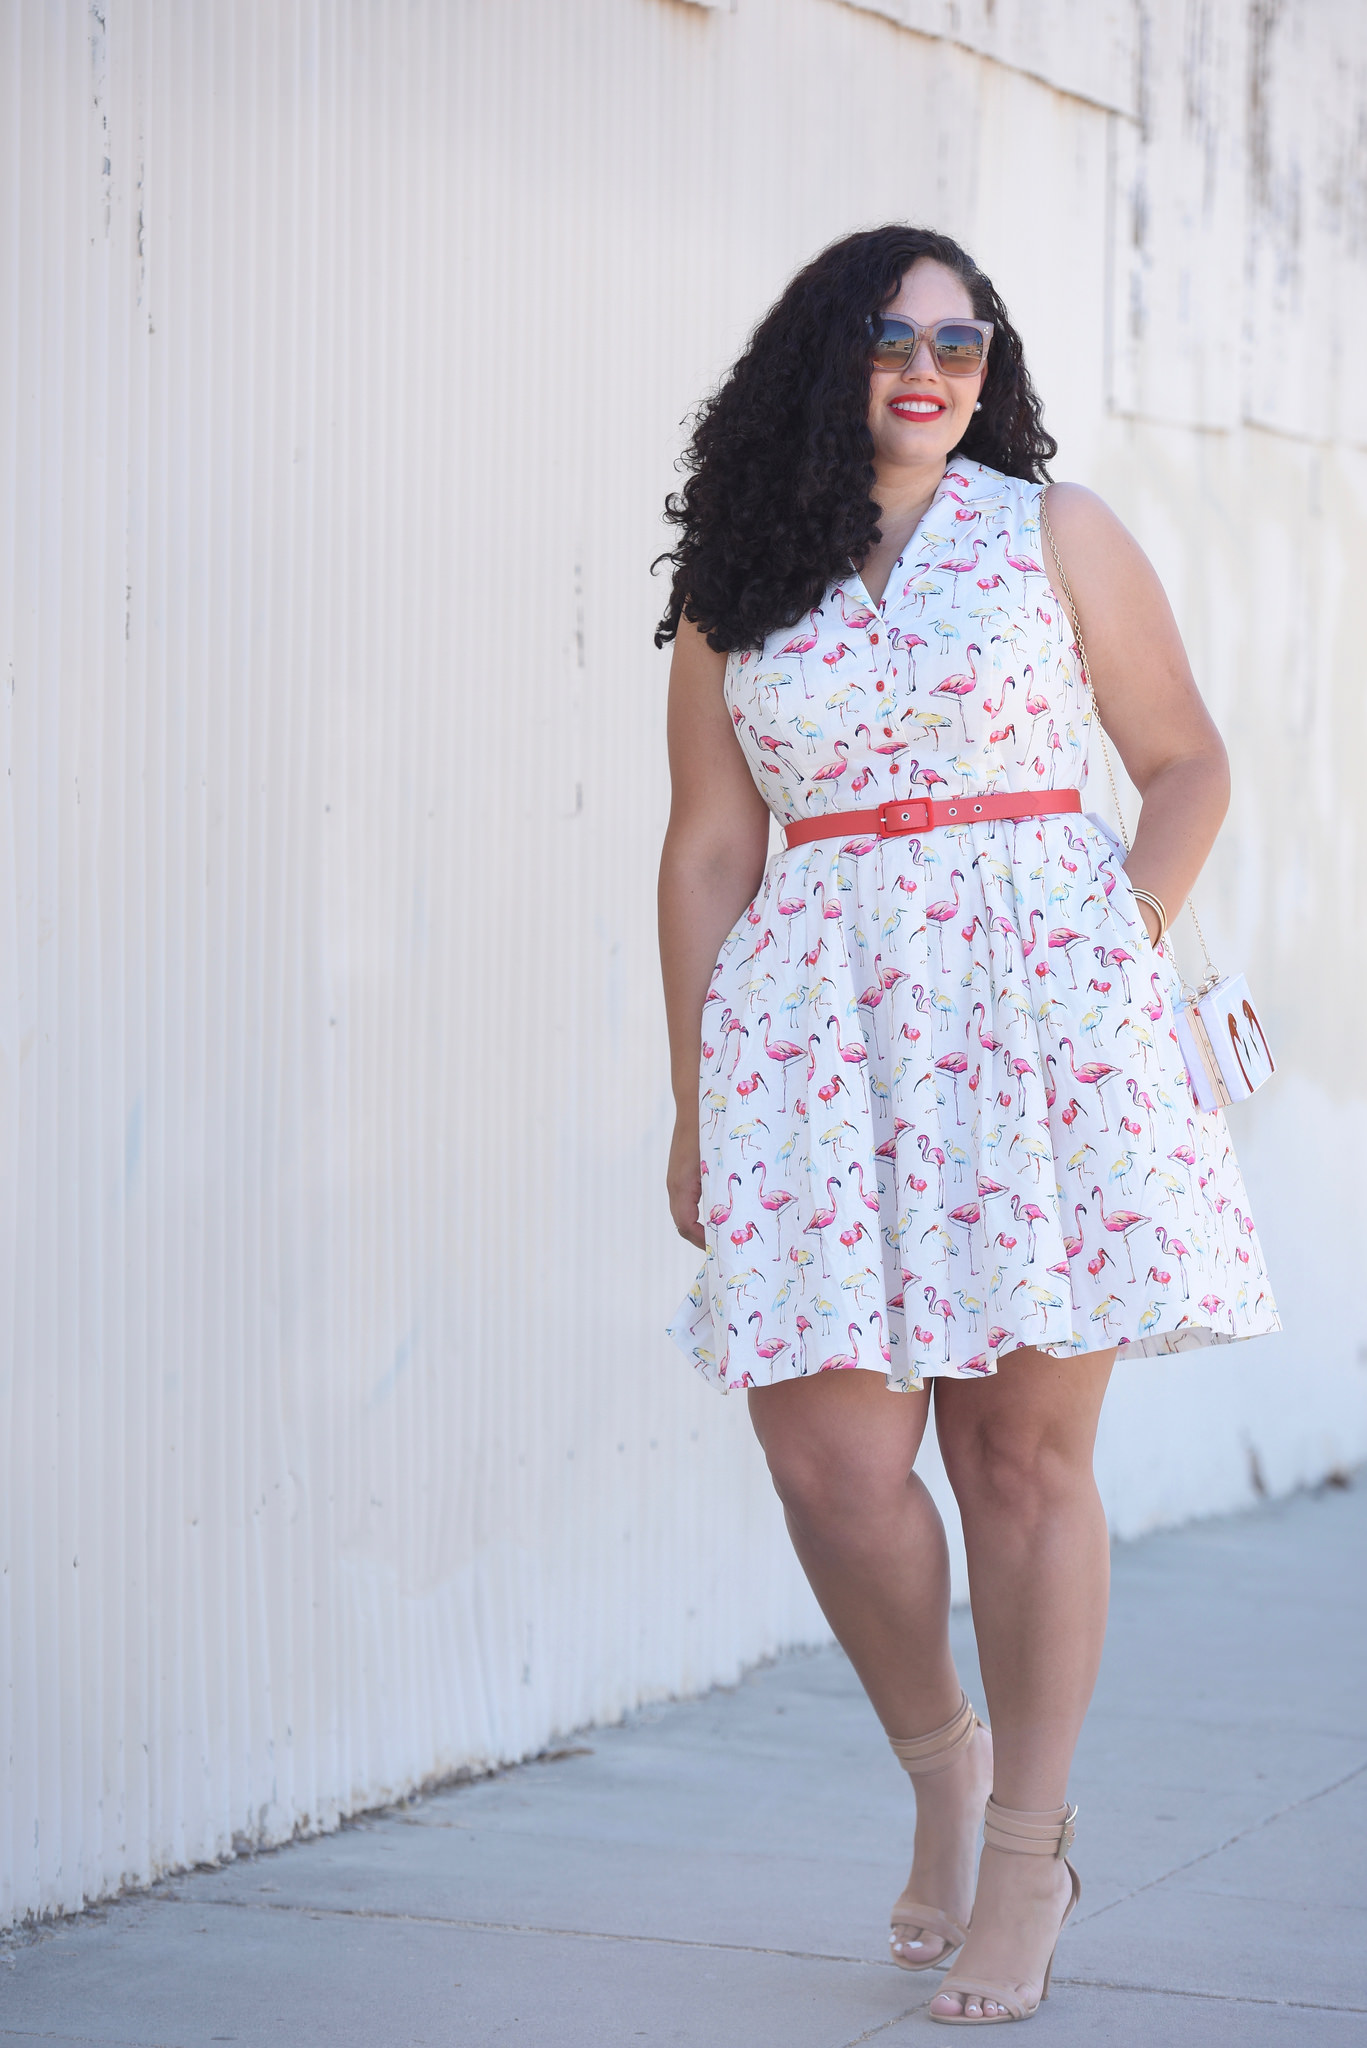 Tanesha Awasthi (formerly known as girl with curves) wearing a vintage inspired Flamingo print dress from ModCloth.